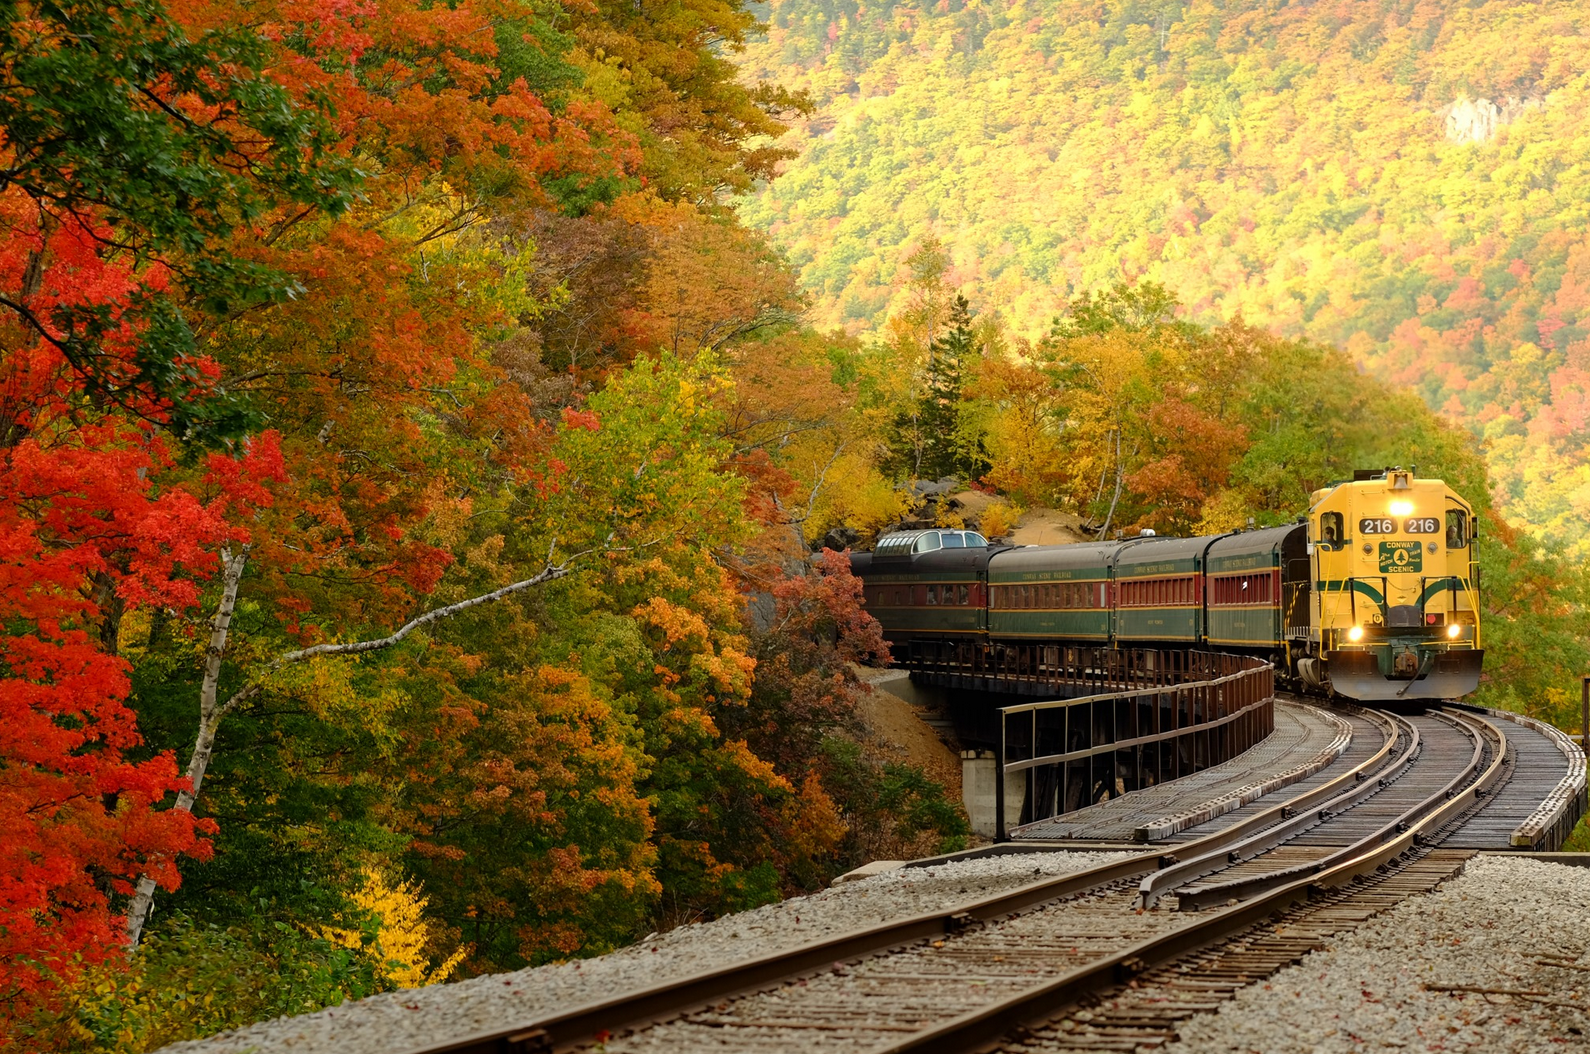 This 21-Mile Historic Train Excursion In New Hampshire Will Take You Over The River And Through The Fall Foliage